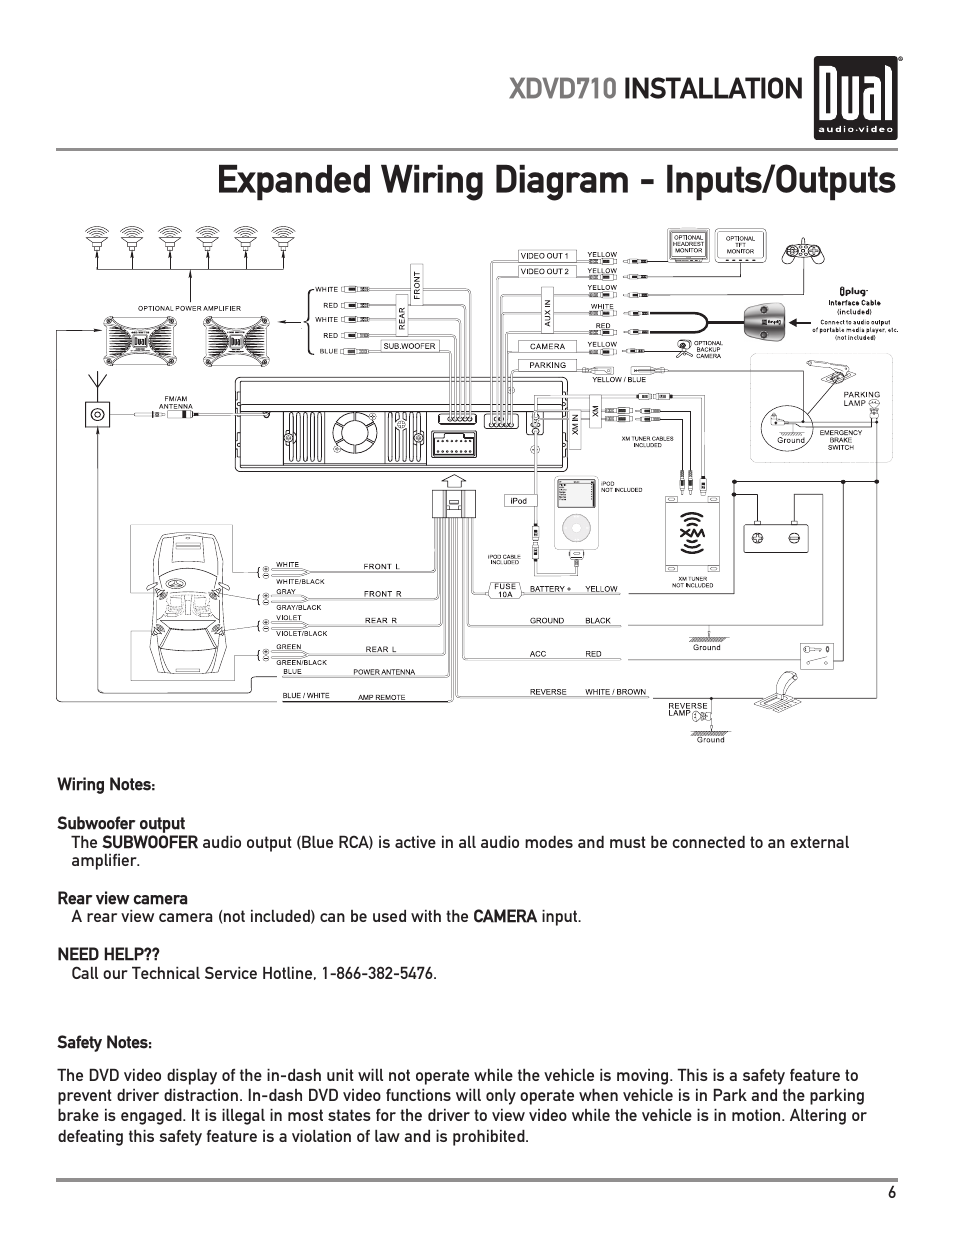 dual xdvd710 page7 expanded wiring diagram inputs outputs, xdvd710 installation wiring diagram for a dual car stereo at eliteediting.co